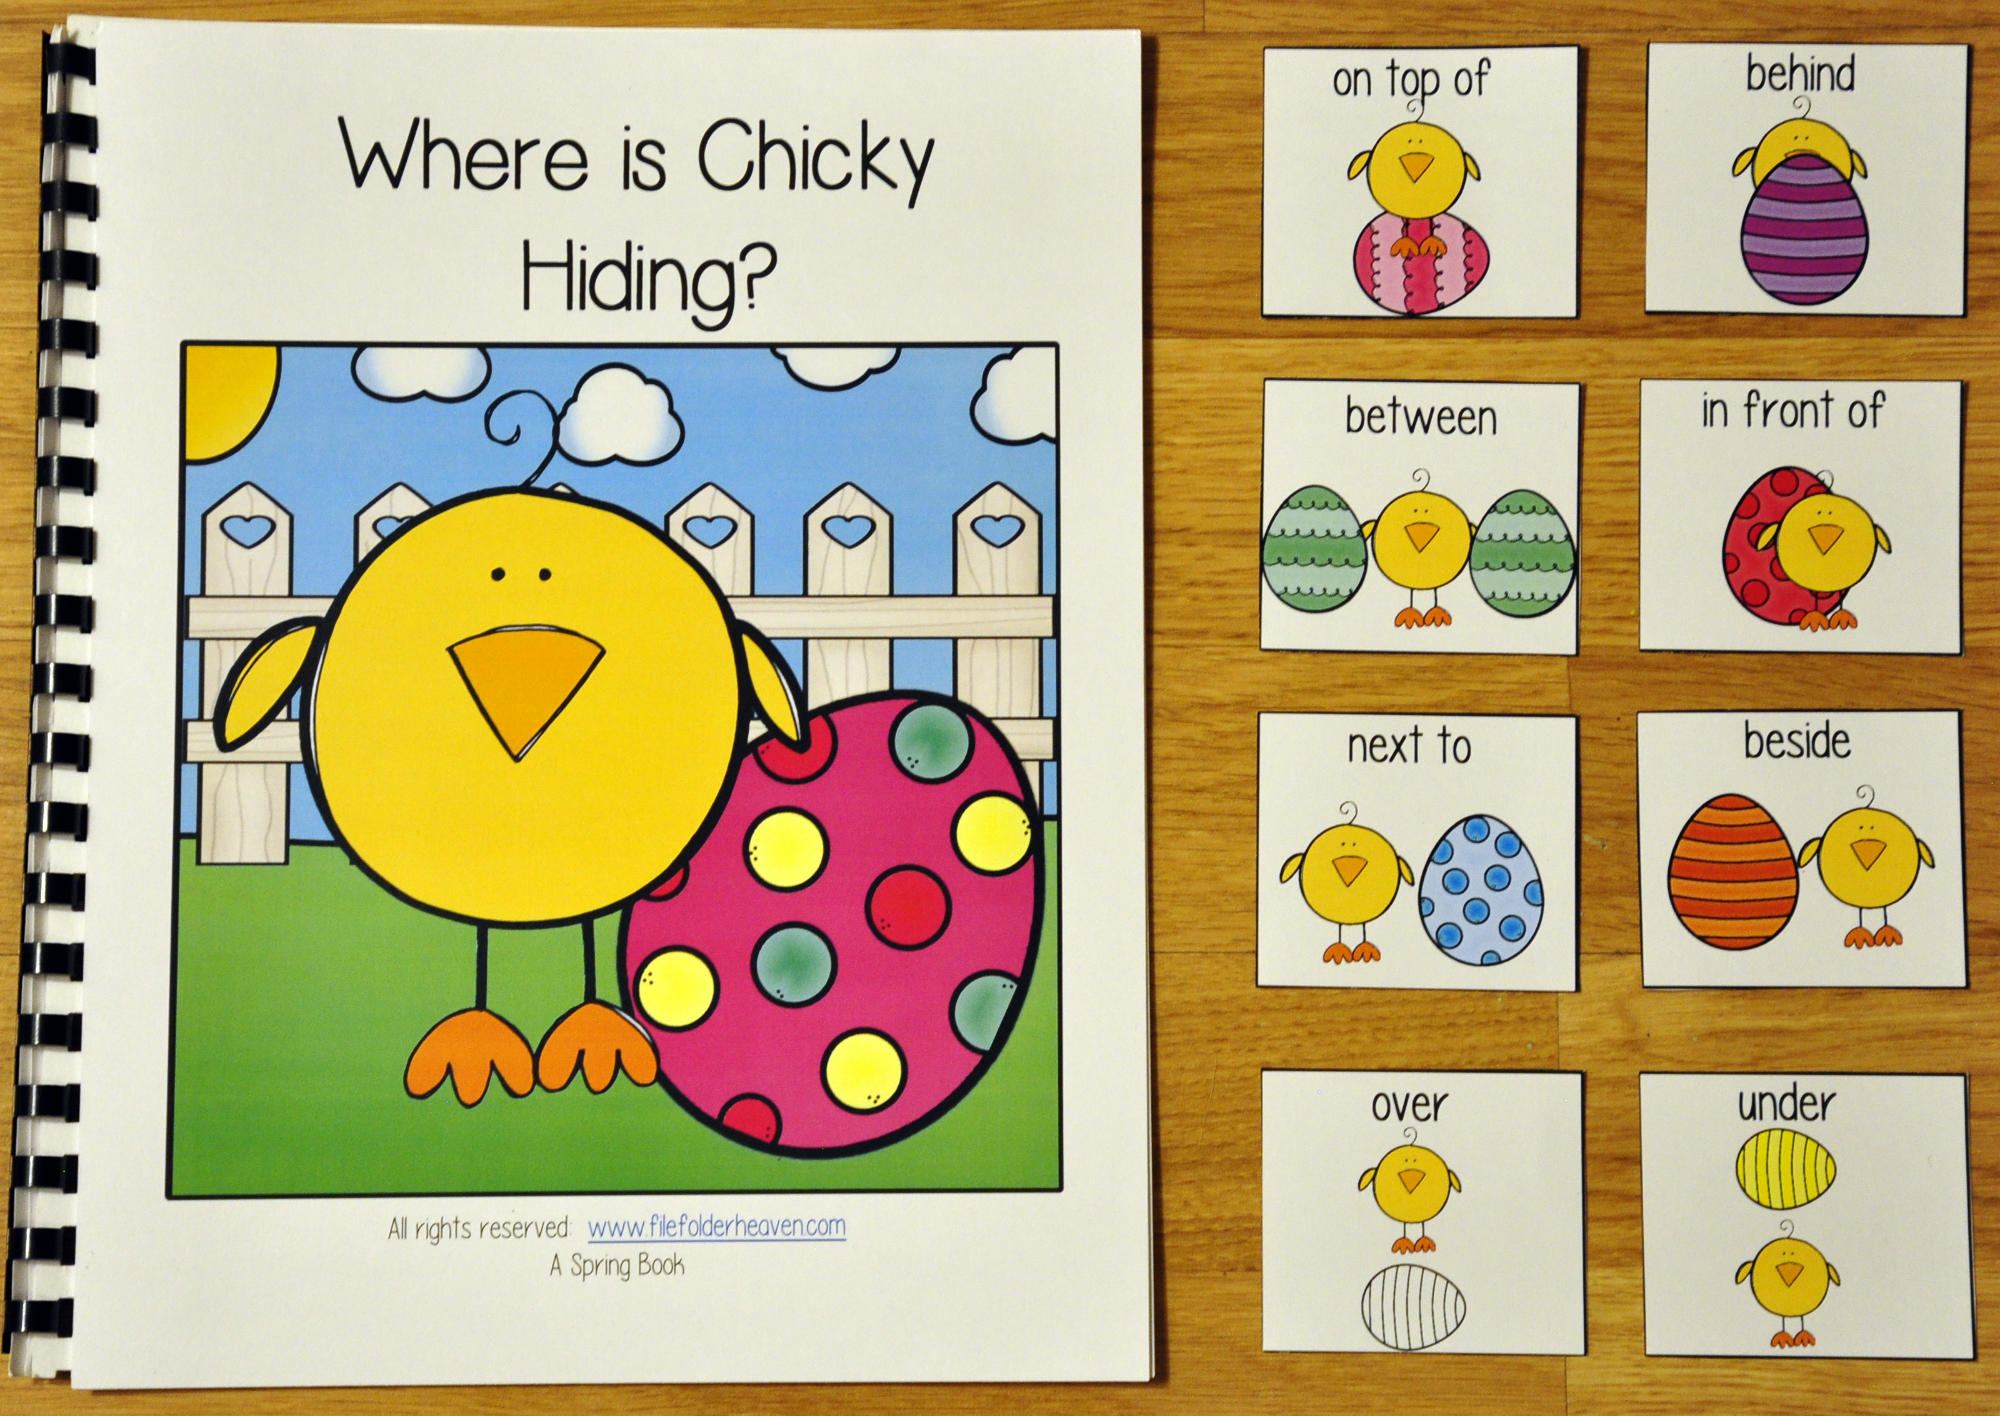 """Where is Chicky Hiding?"" Adapted Book"